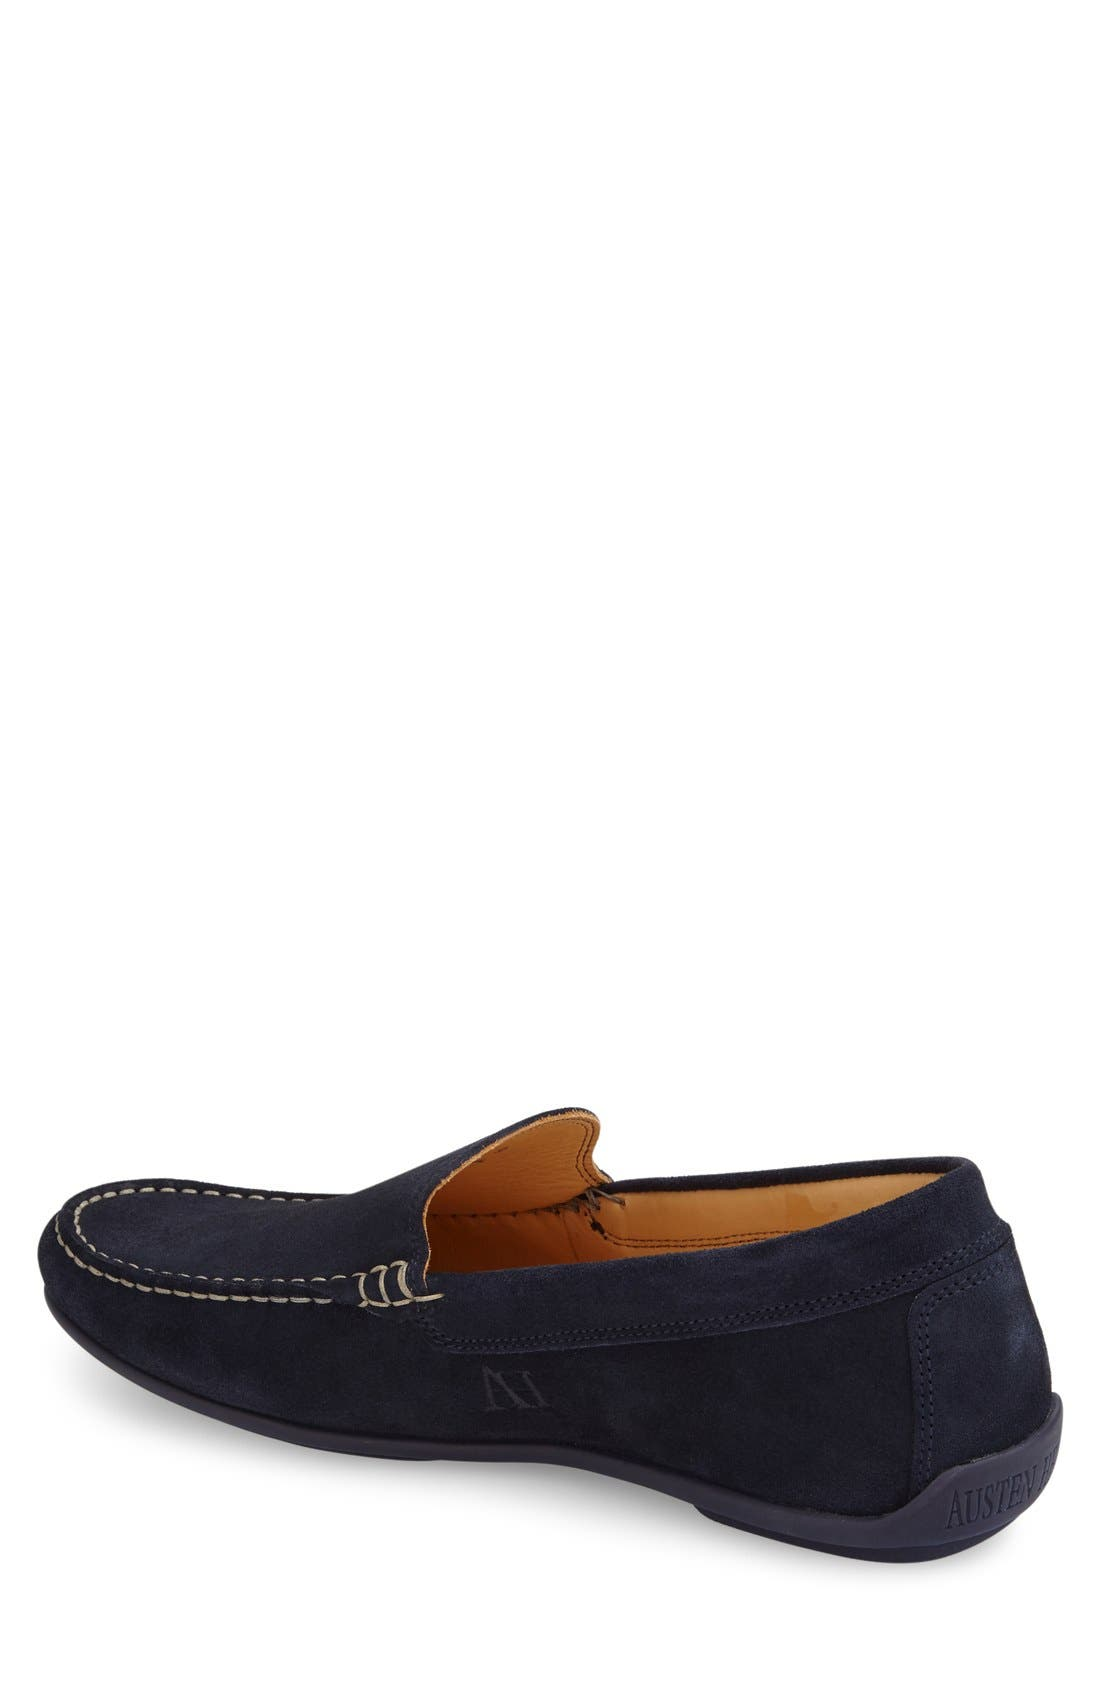 'Meridians' Loafer,                             Alternate thumbnail 10, color,                             410